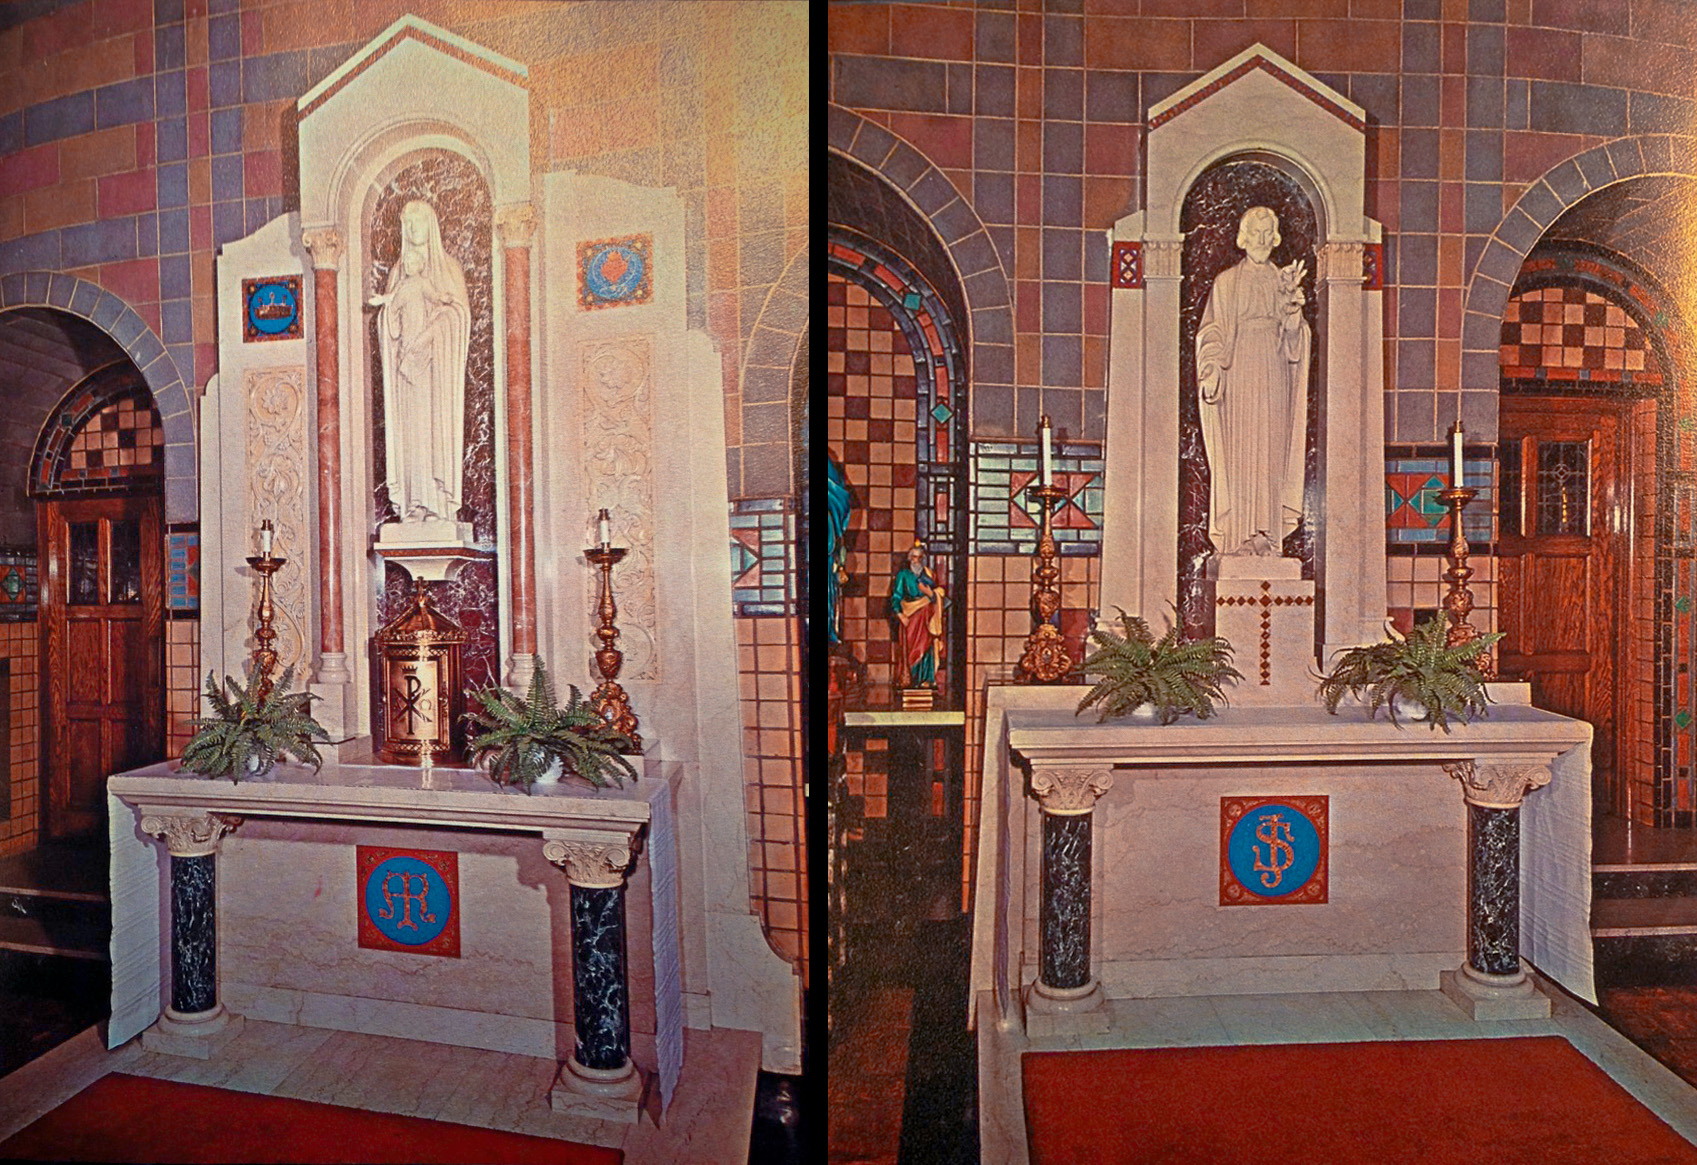 The original side altars we wood, but were thrown away to make space for the updated marble altars in the 50s